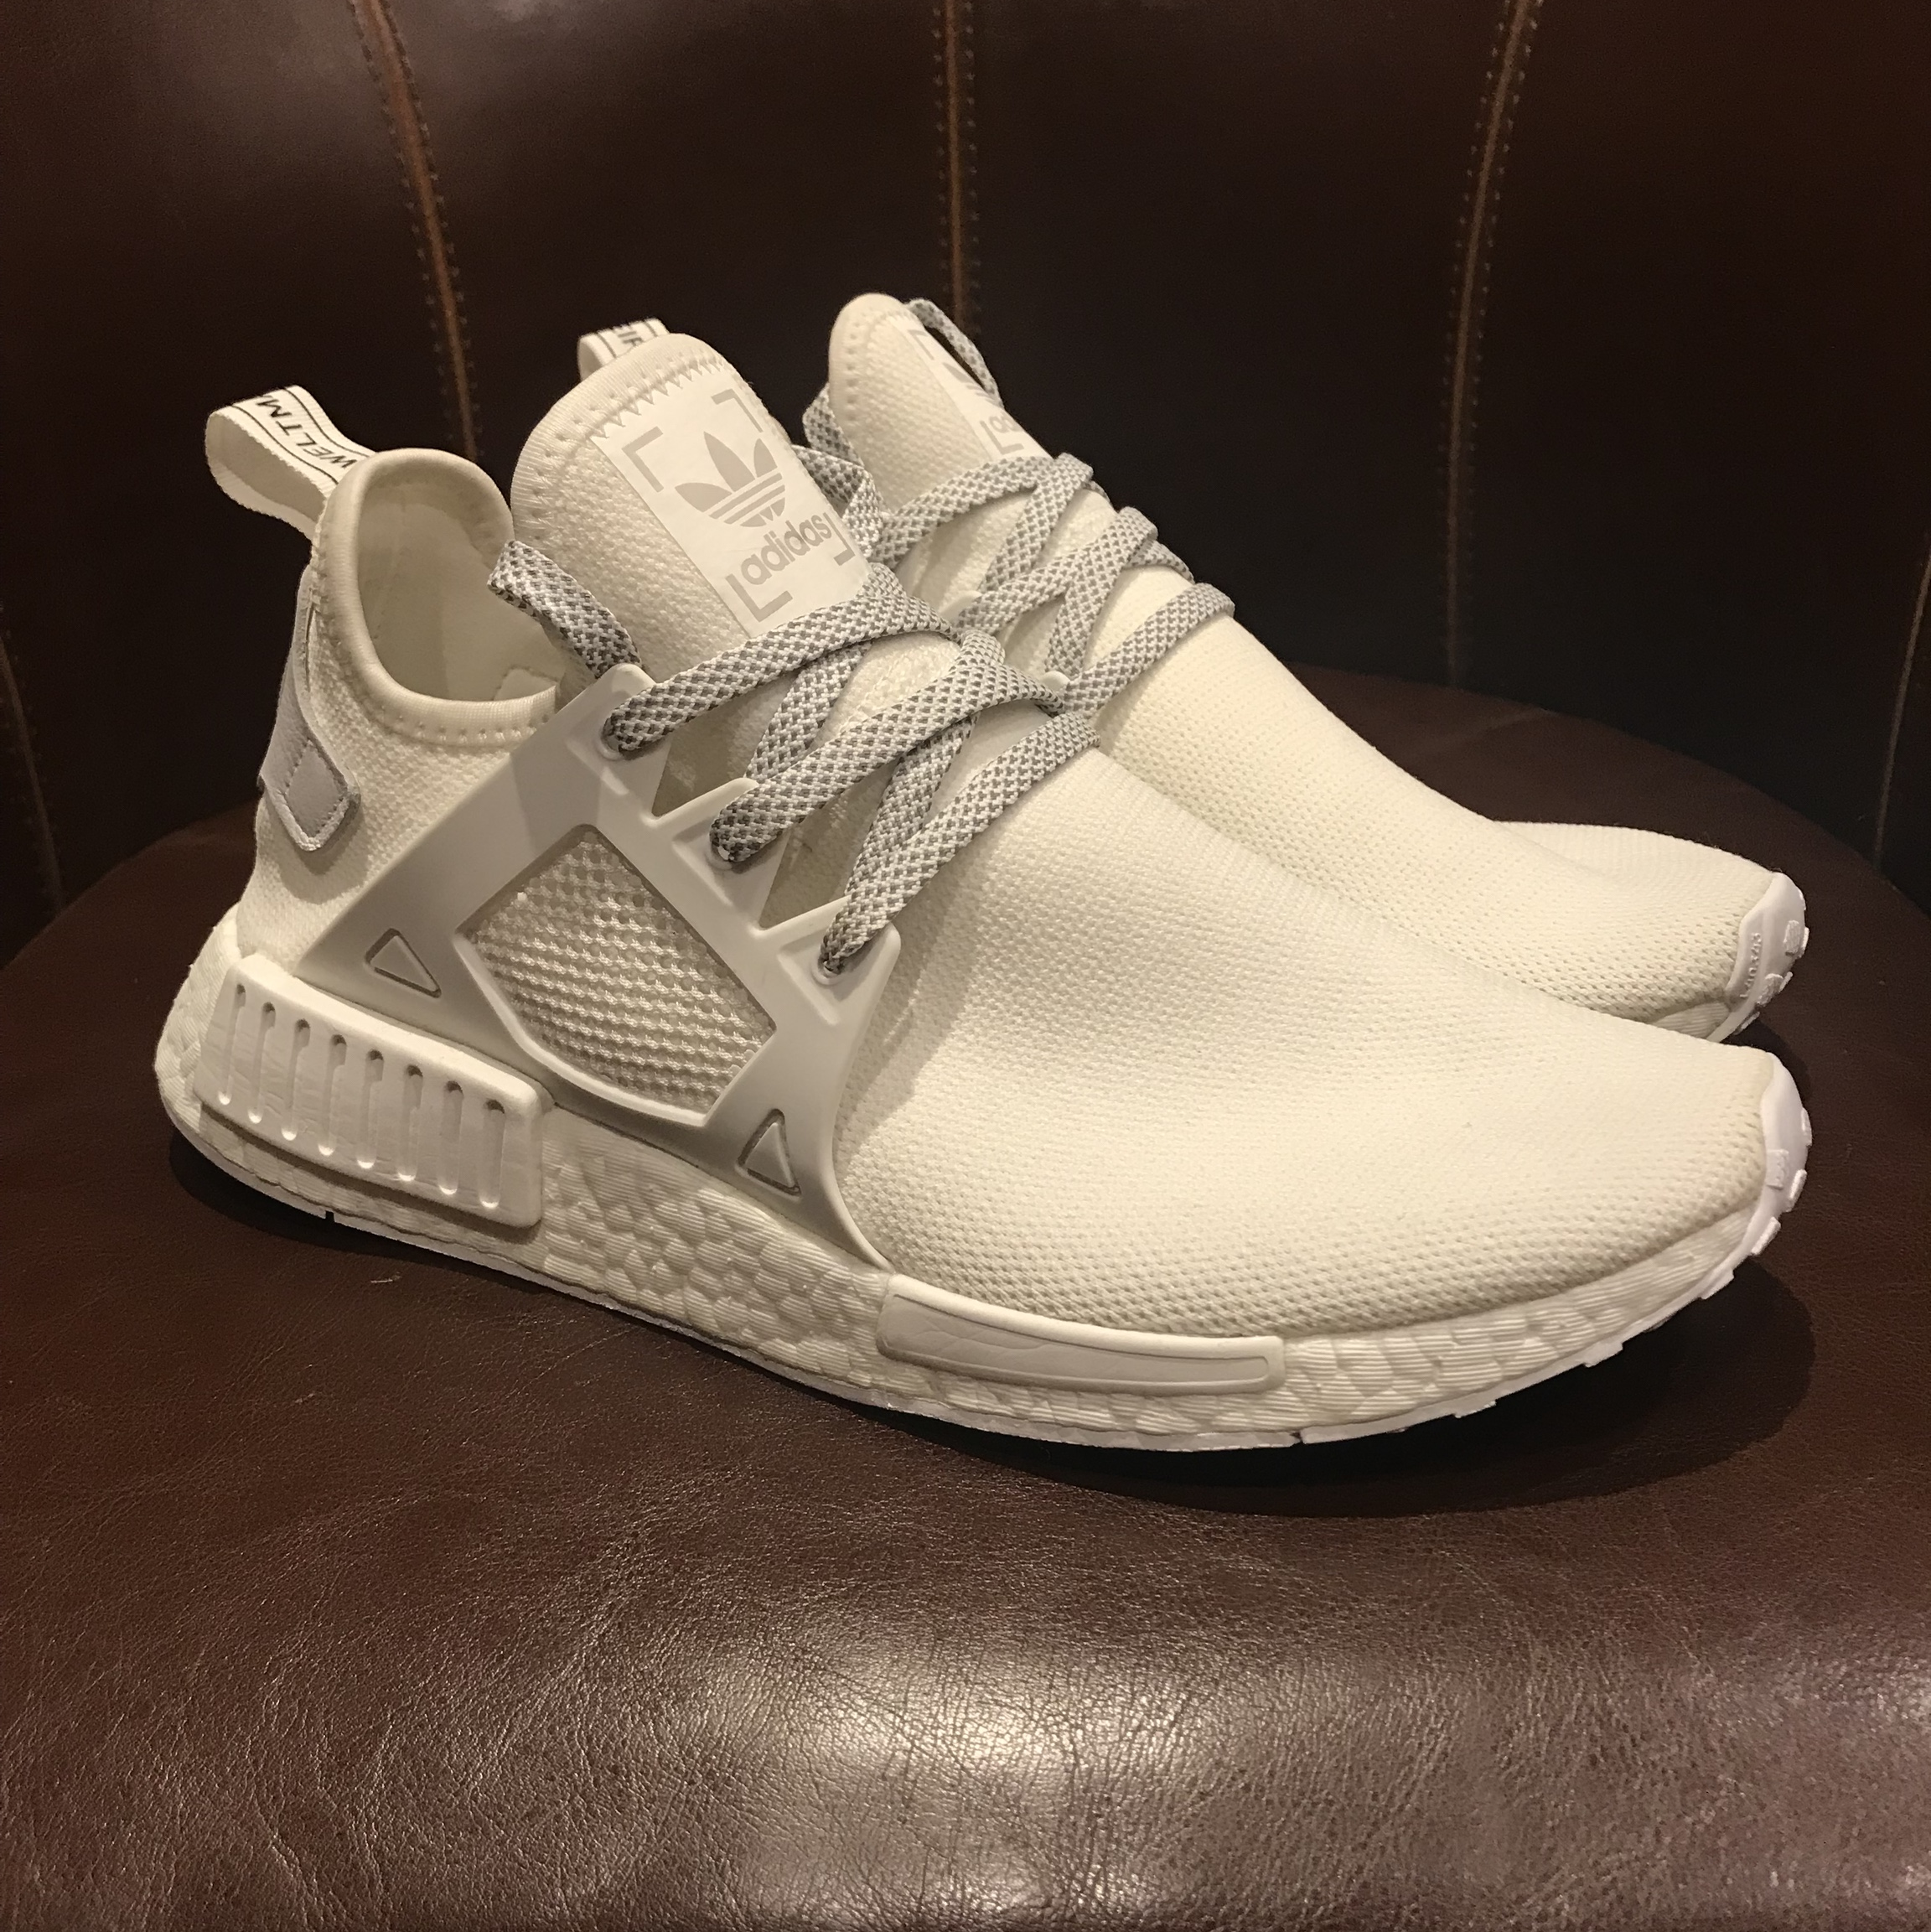 Adidas Nmd Xr1 Triple White With Box Worn A Couple Depop